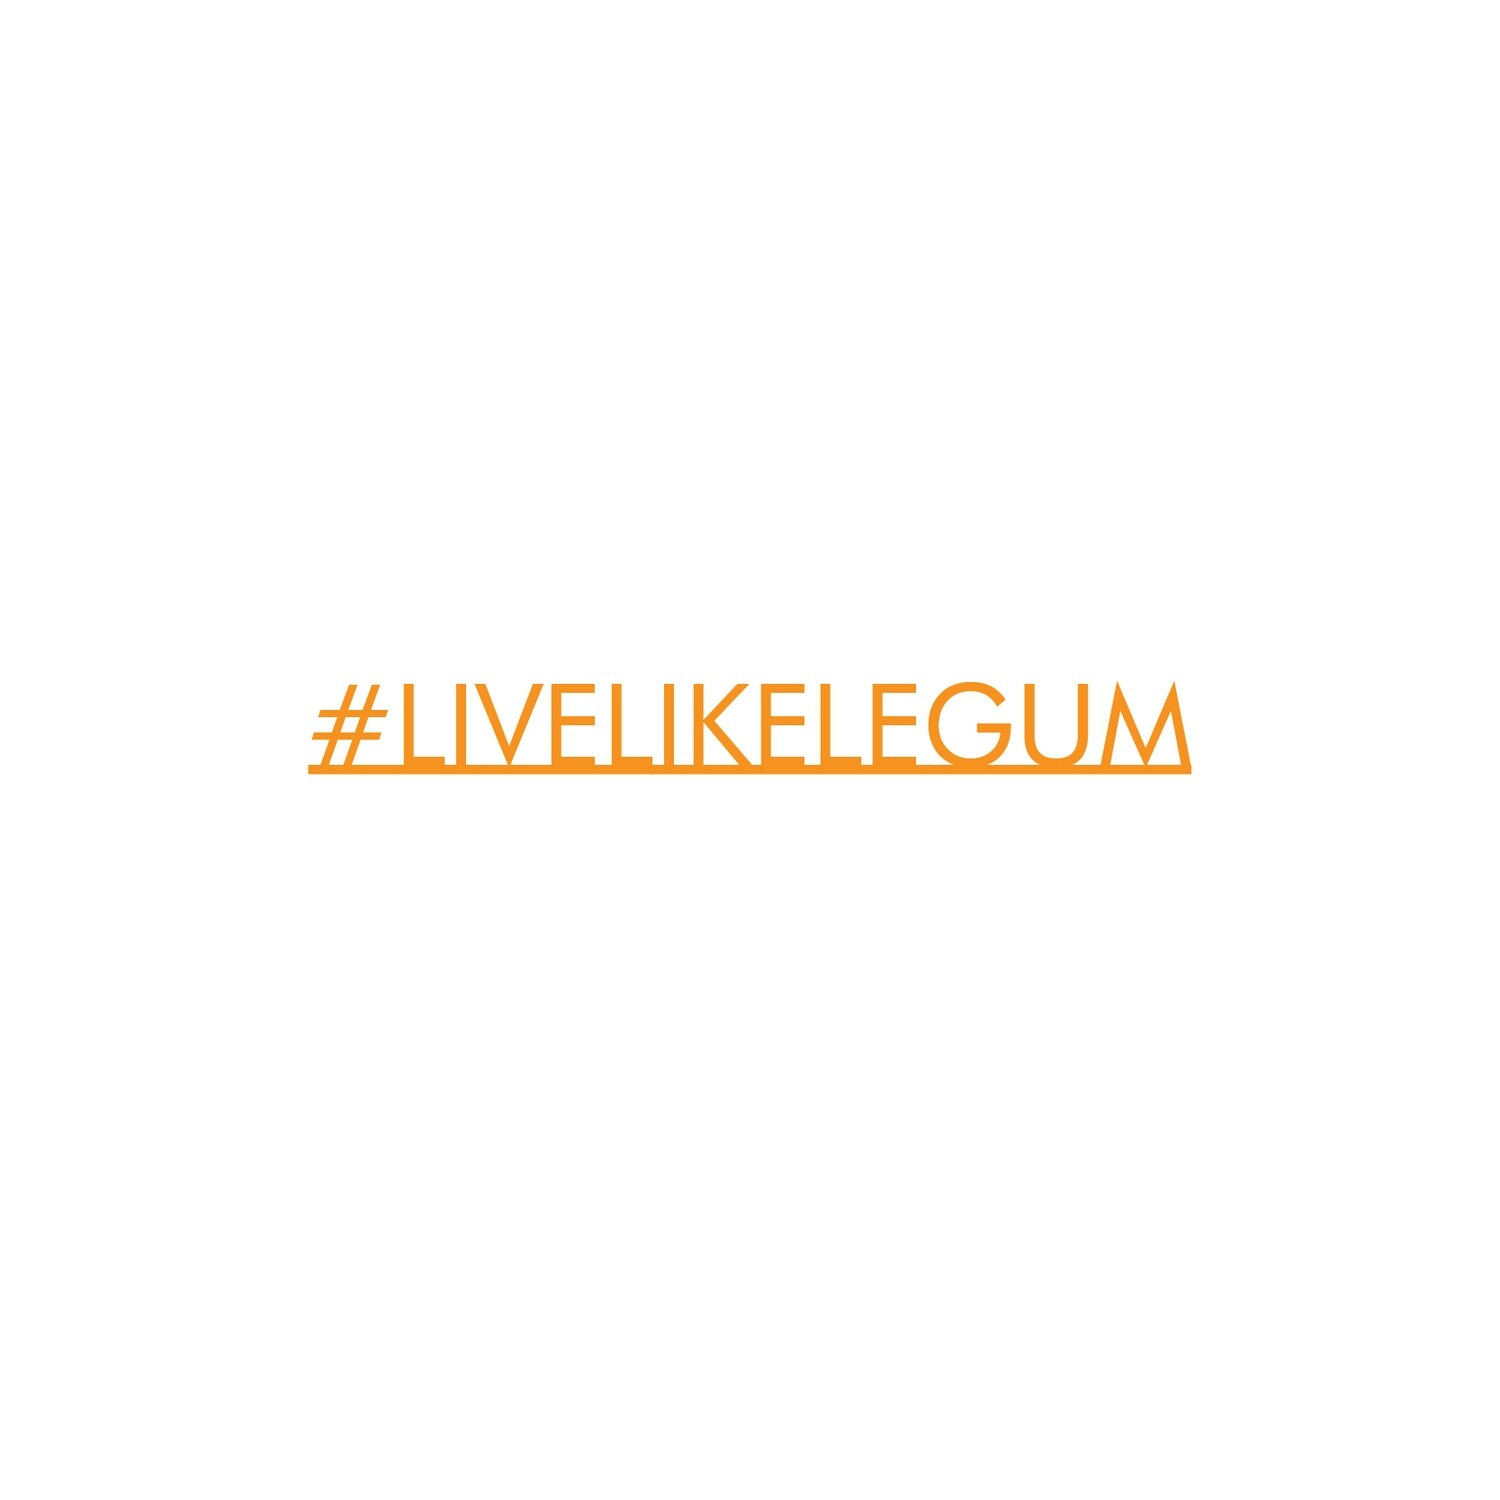 #LiveLikeLegum Orange Desk Accessory